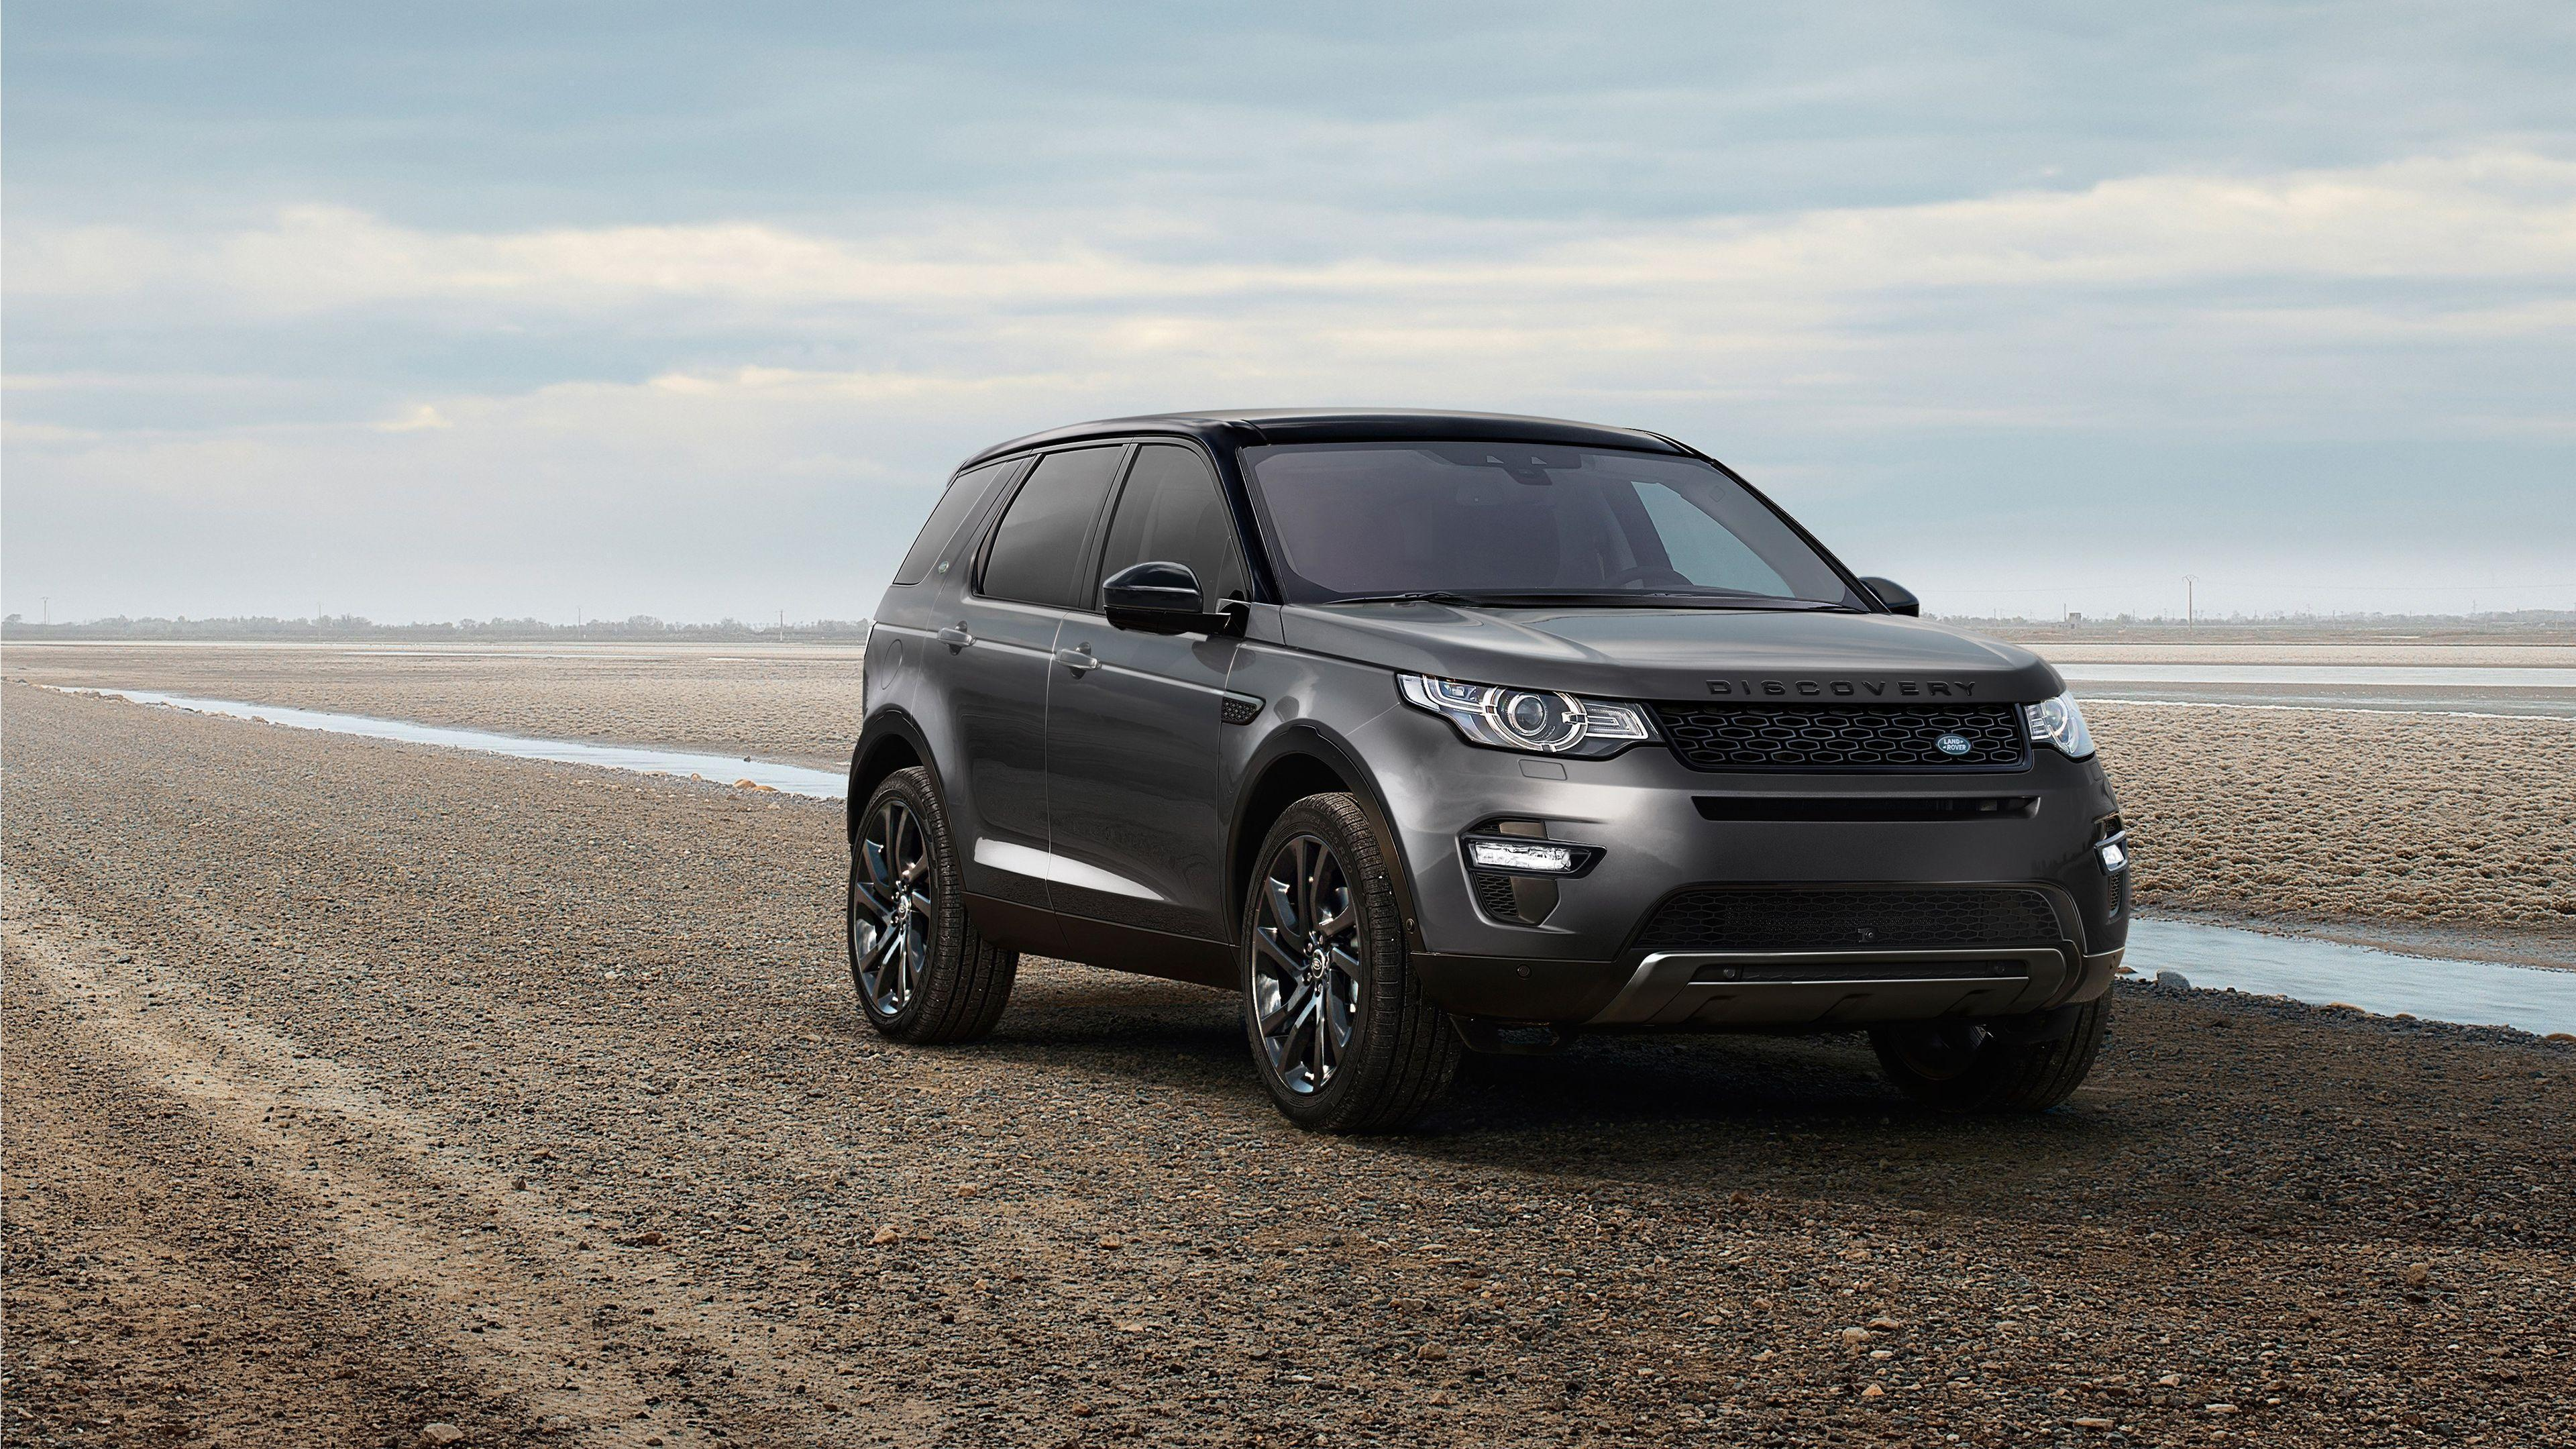 2017 Land Rover Discovery Sport 4K Wallpaper | HD Car Wallpapers